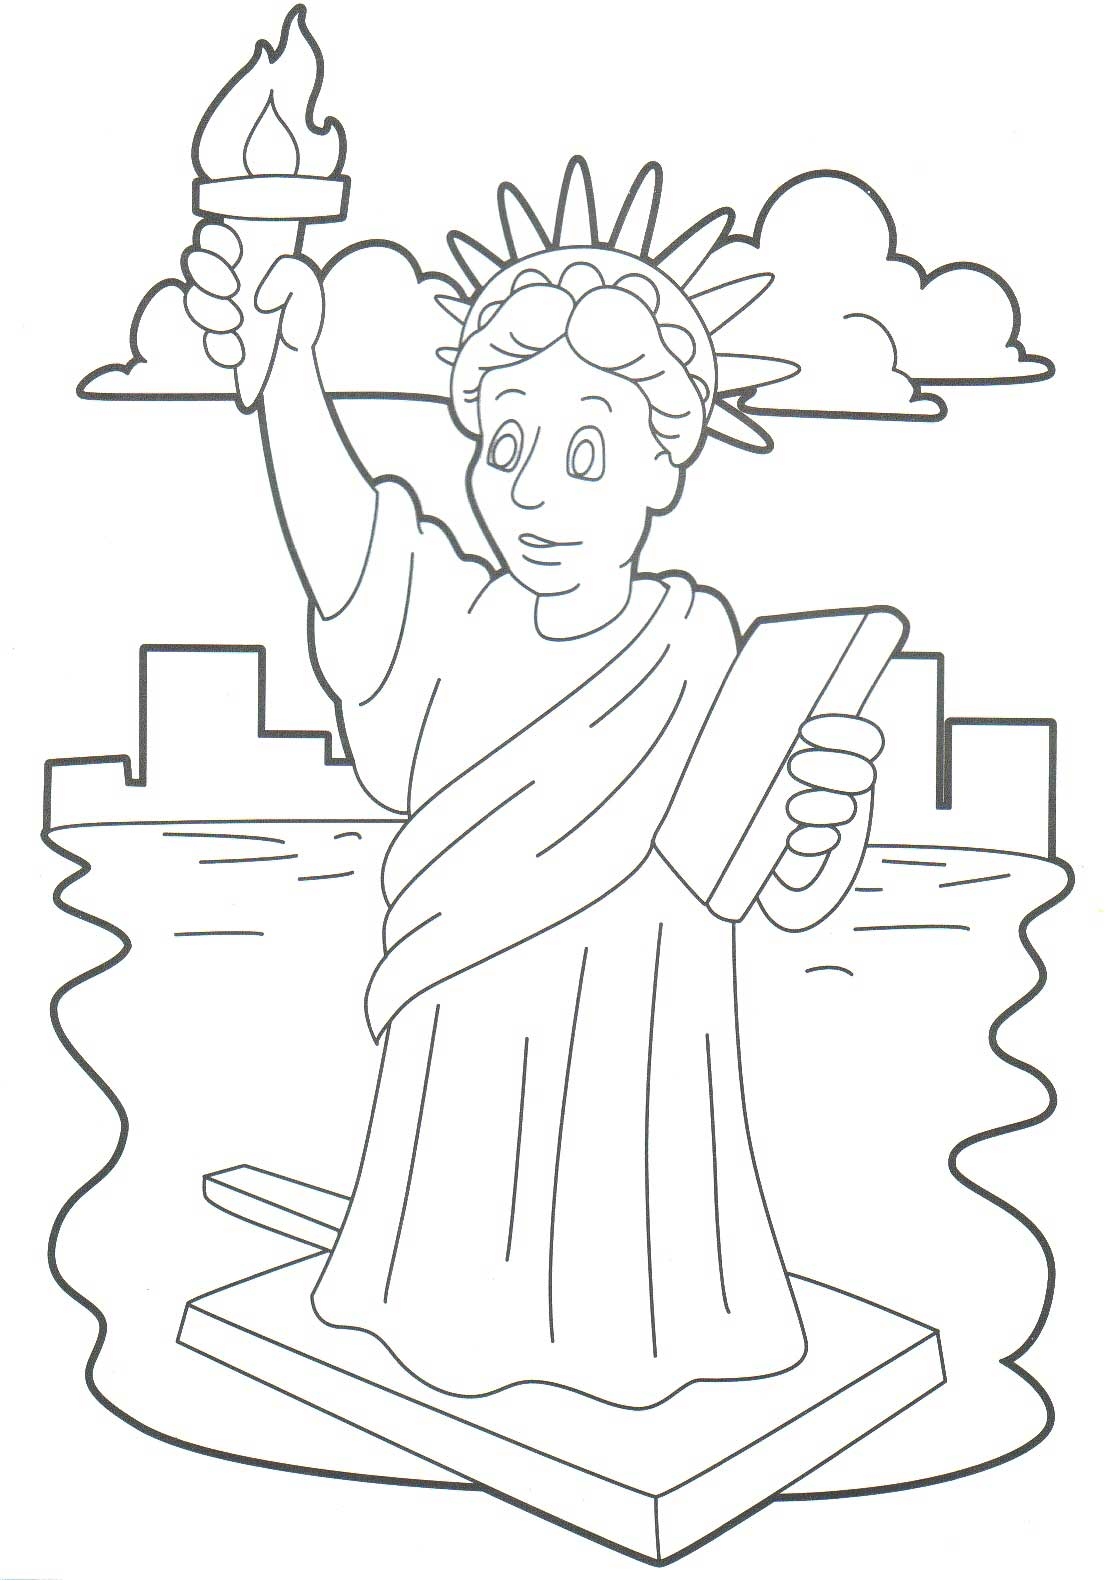 1110x1580 Printable Statue Of Liberty Coloring Pages For Kids